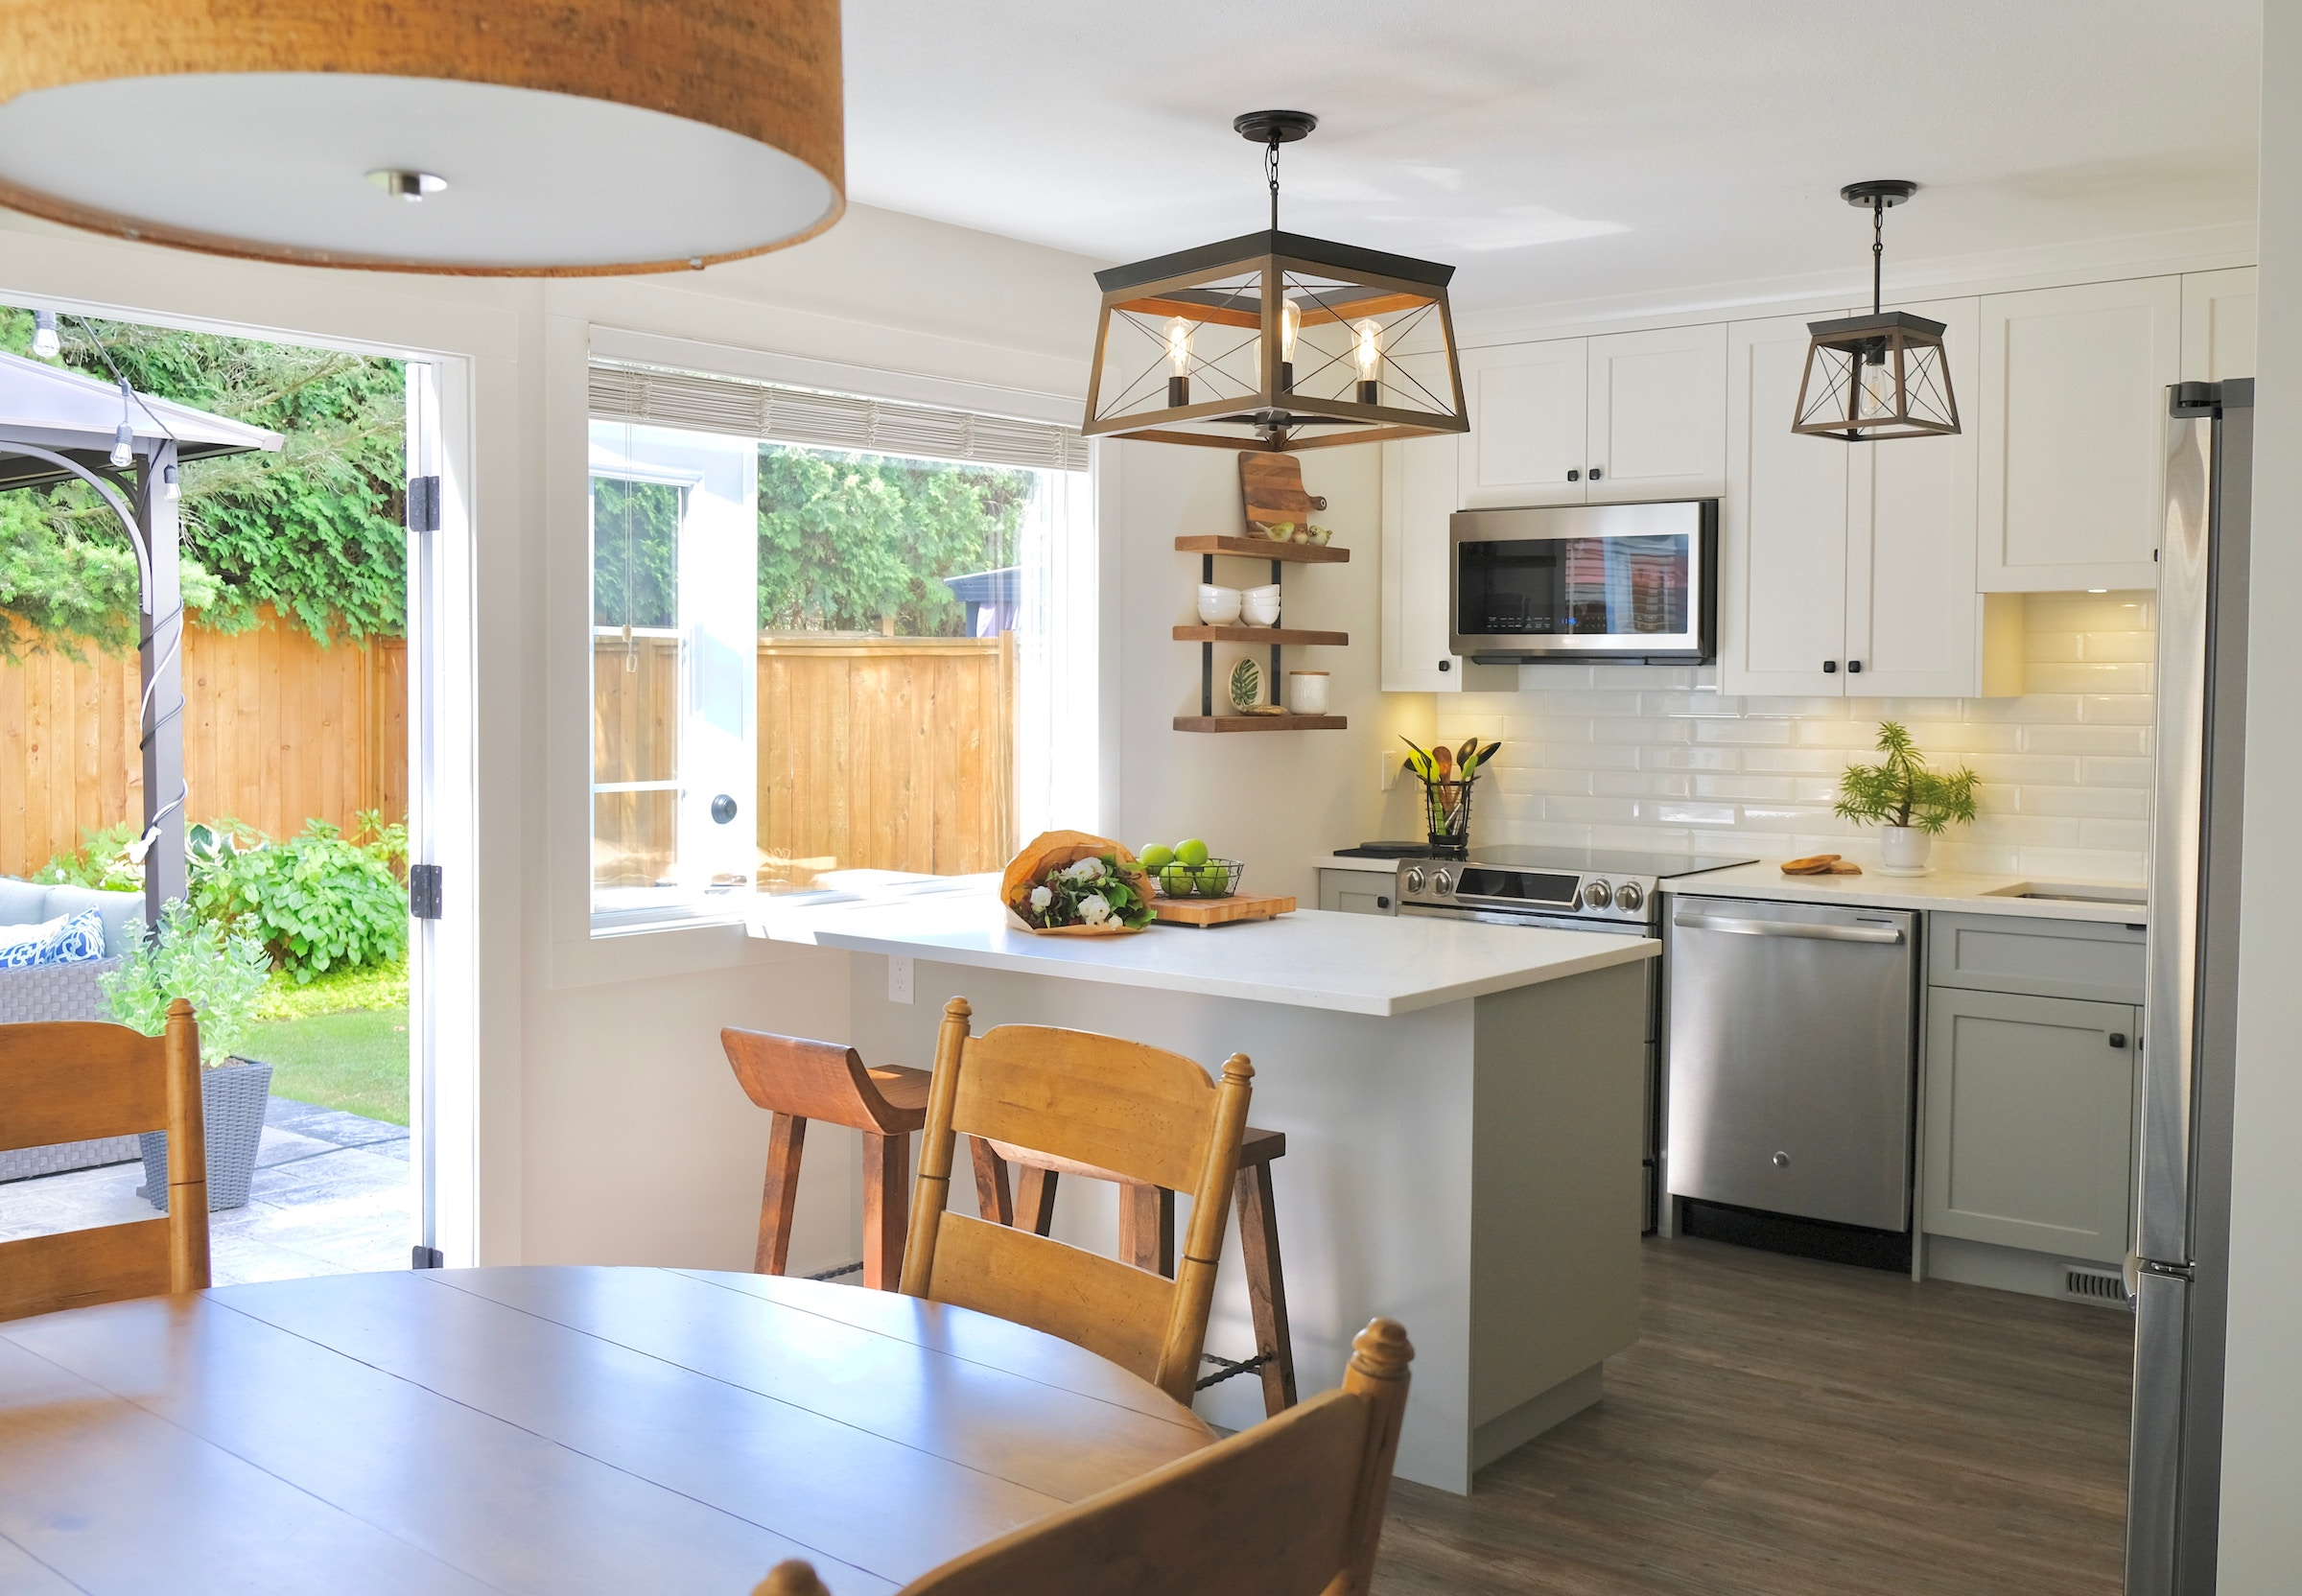 How to choose the right size table for a kitchen